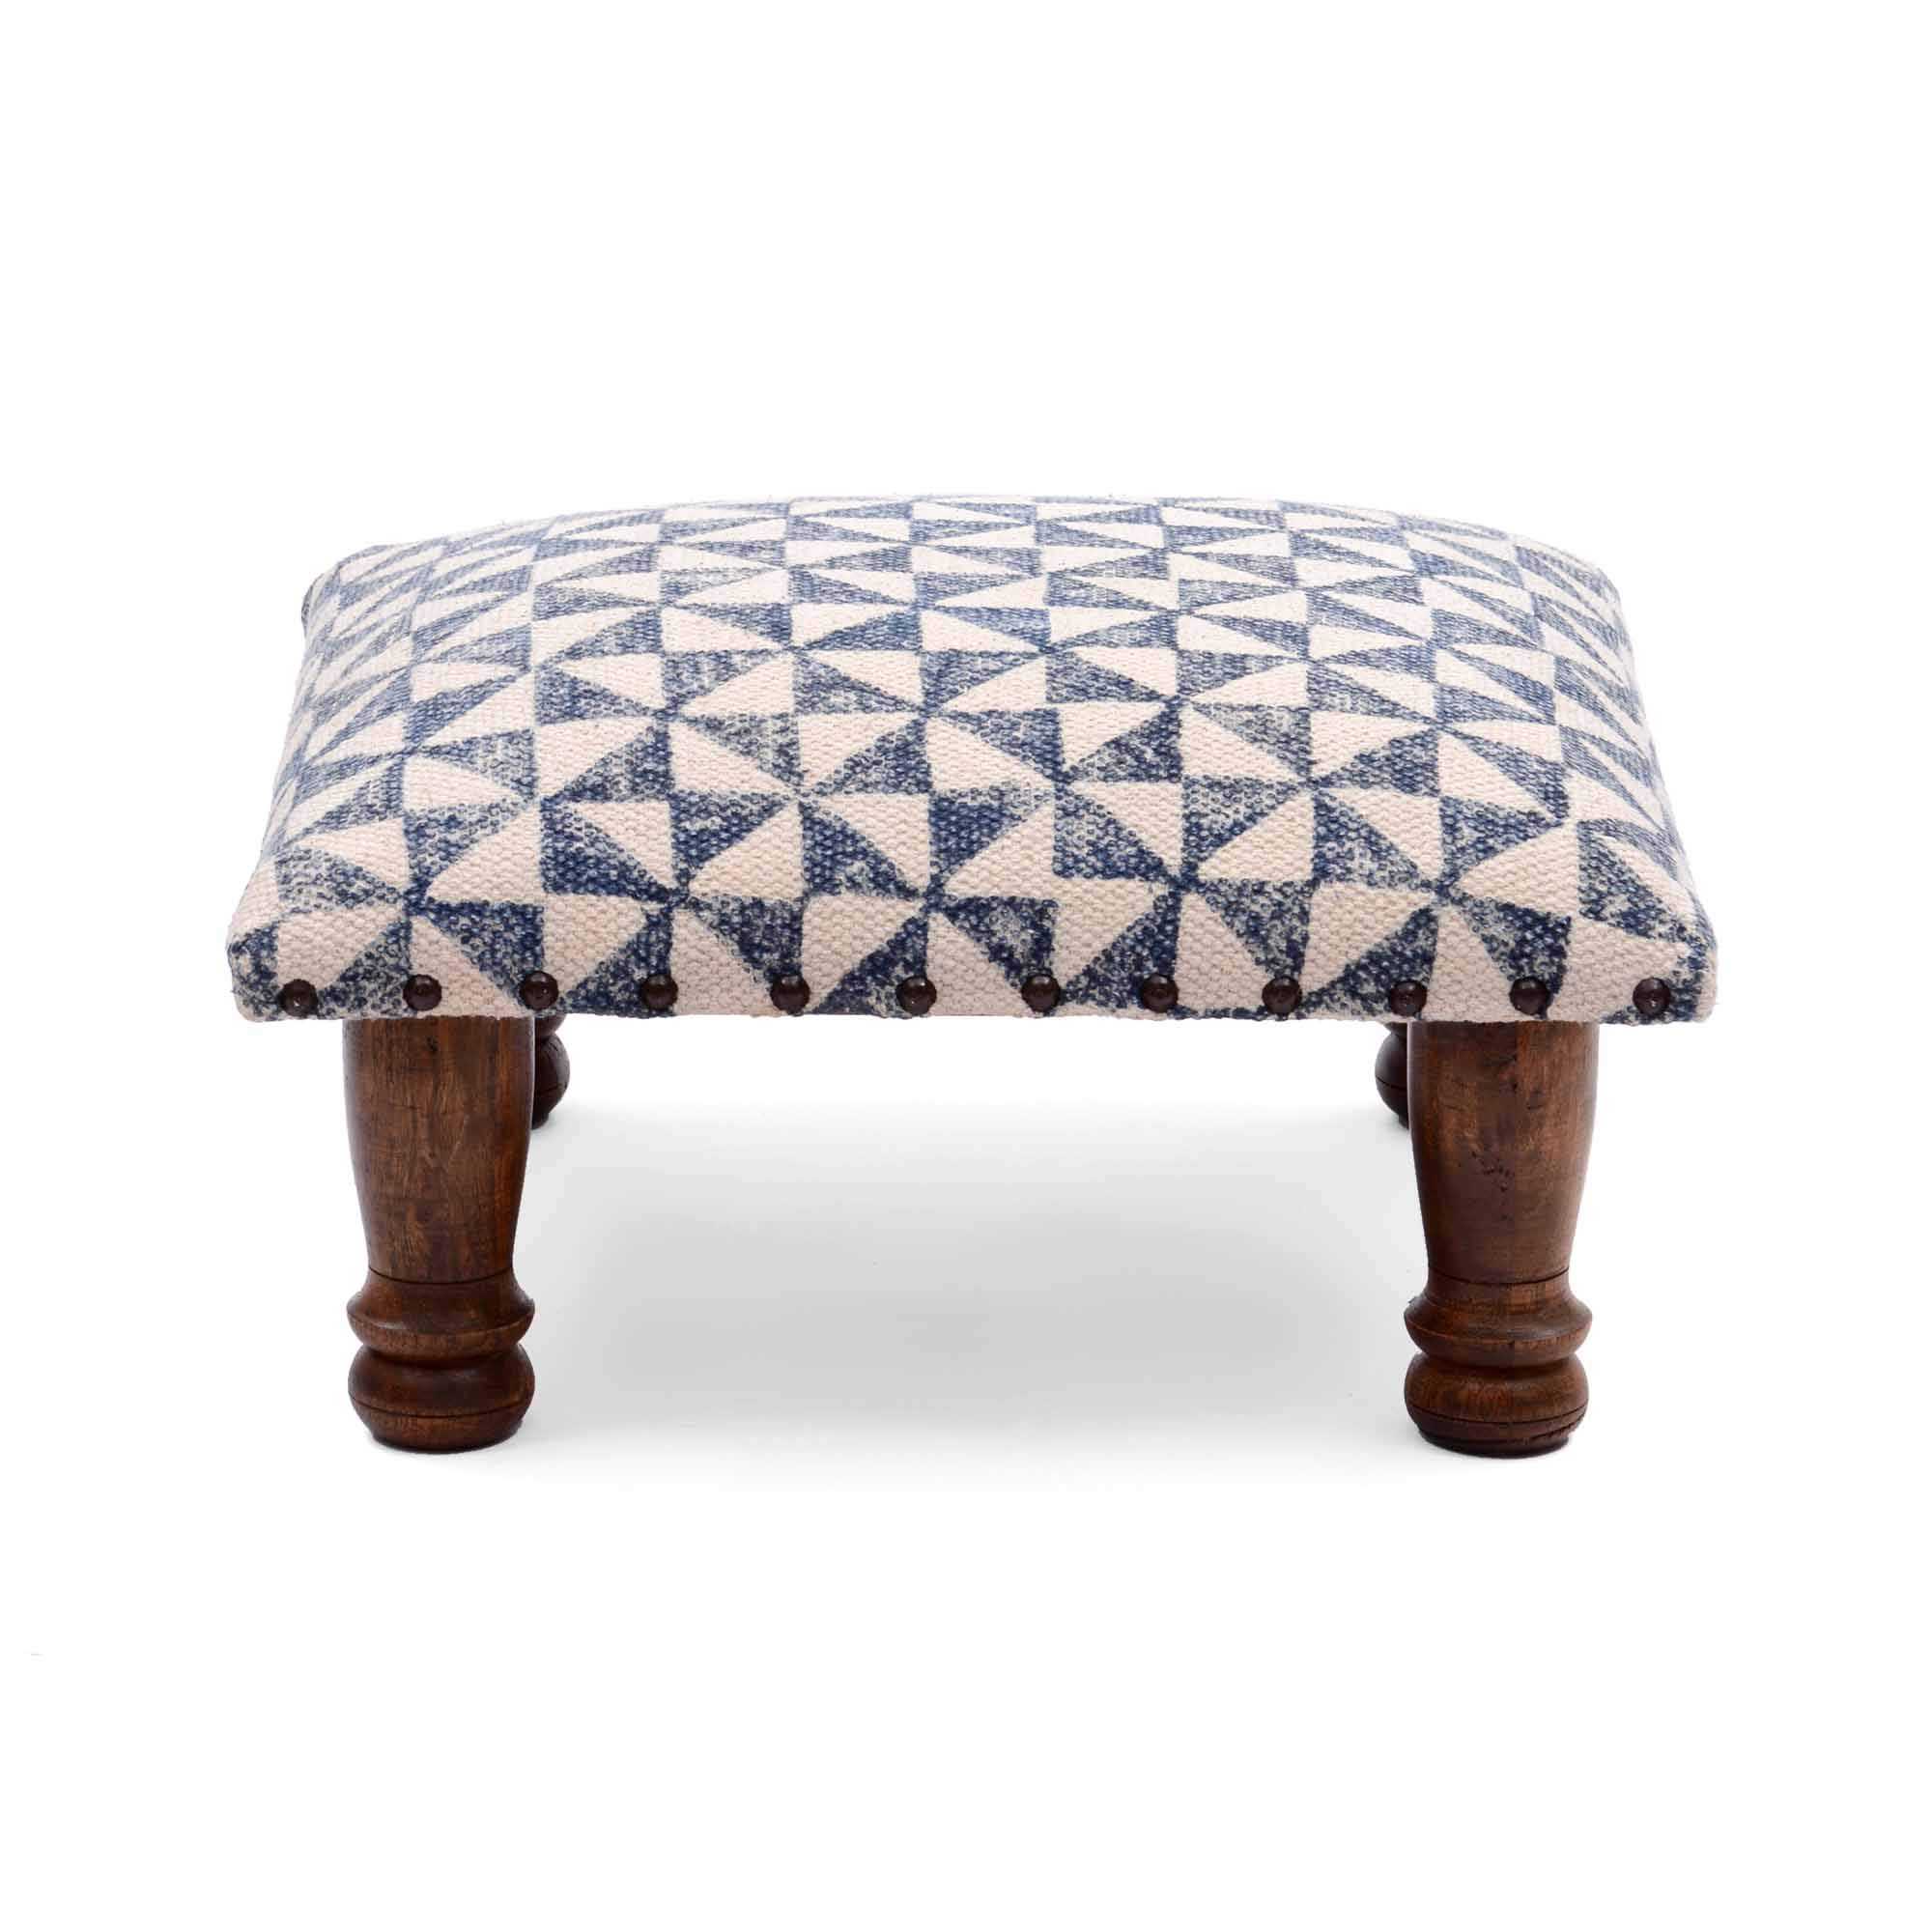 Natural Furnish Printed 100% Cotton Stuffed Poufee and Foot Stool by Natural Furnish